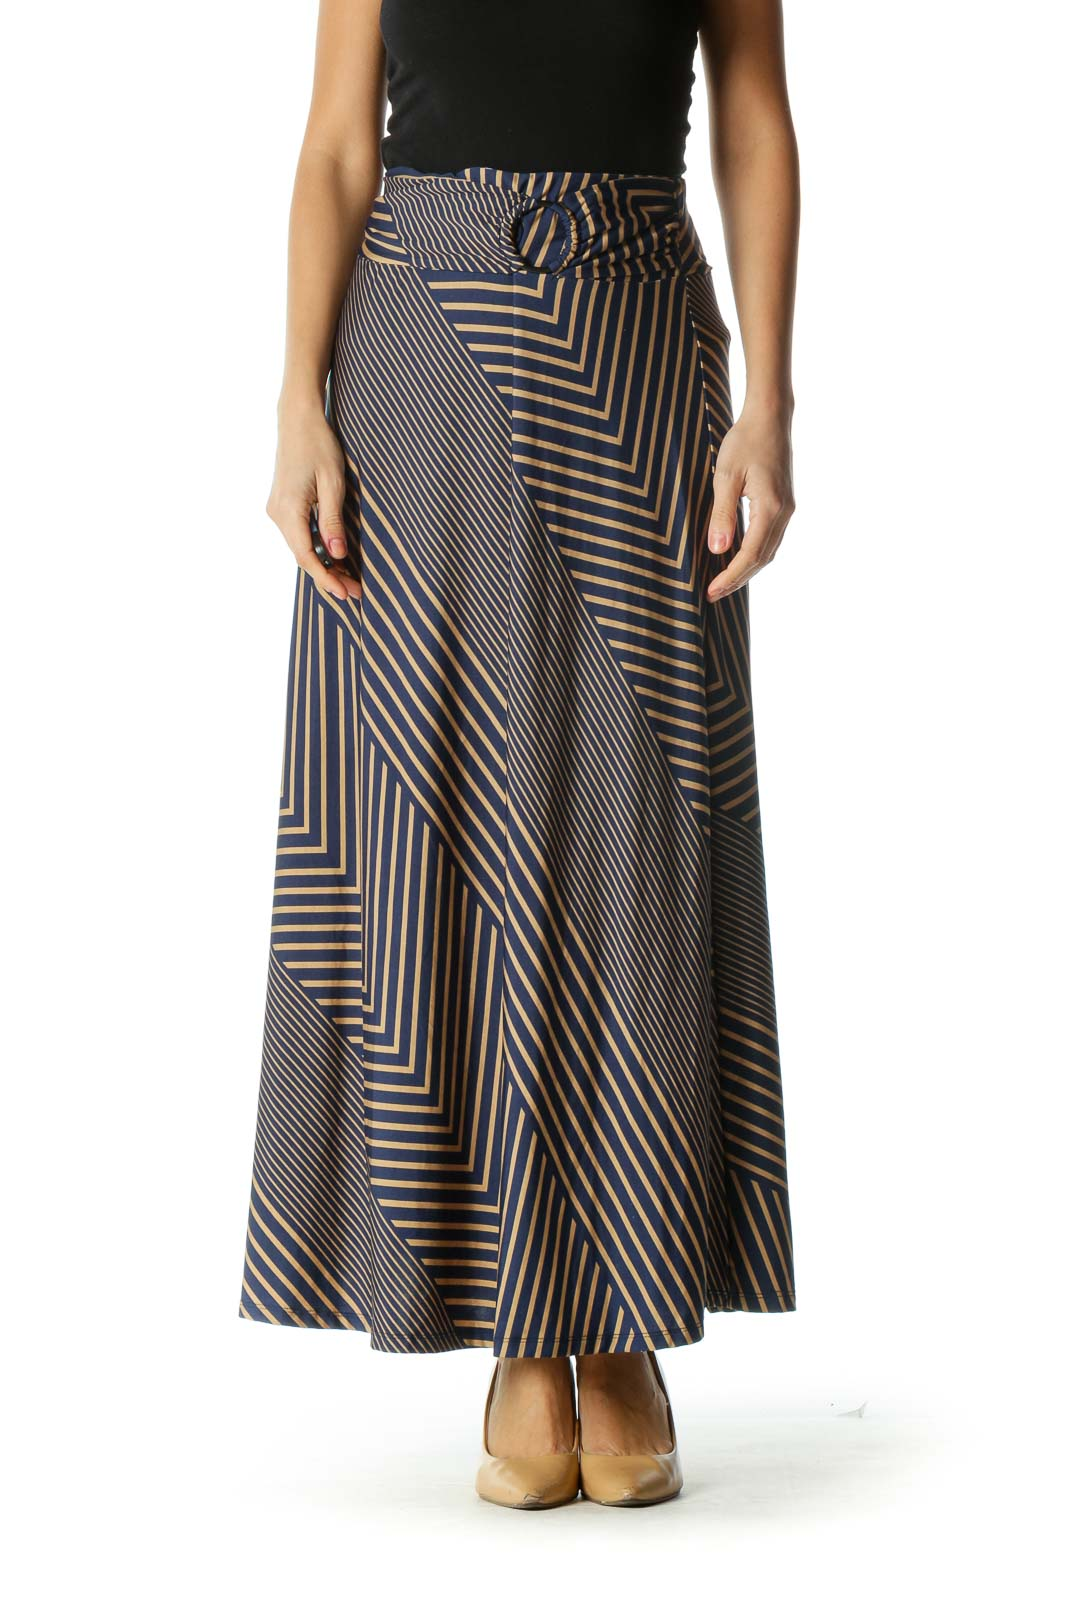 Blue and Brown Striped Flowy Maxi Skirt Front